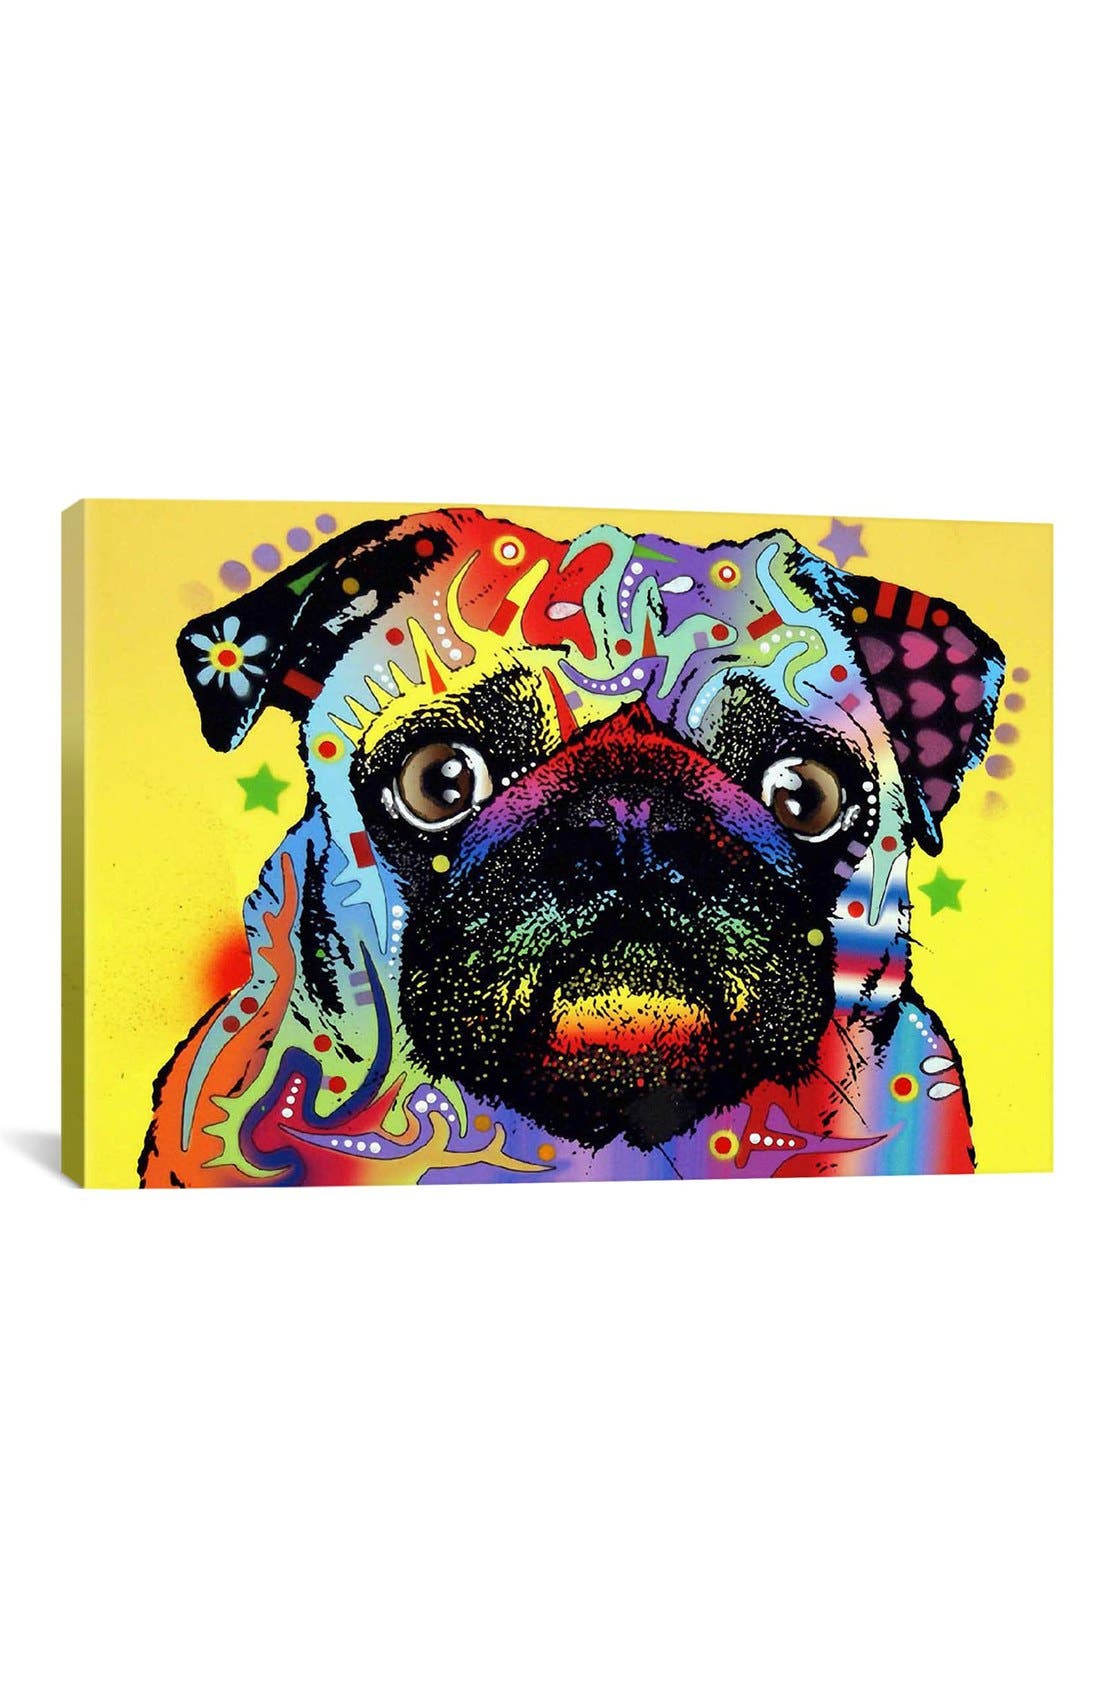 'Pug - Dean Russo' Giclée Print Canvas Art,                         Main,                         color, Yellow